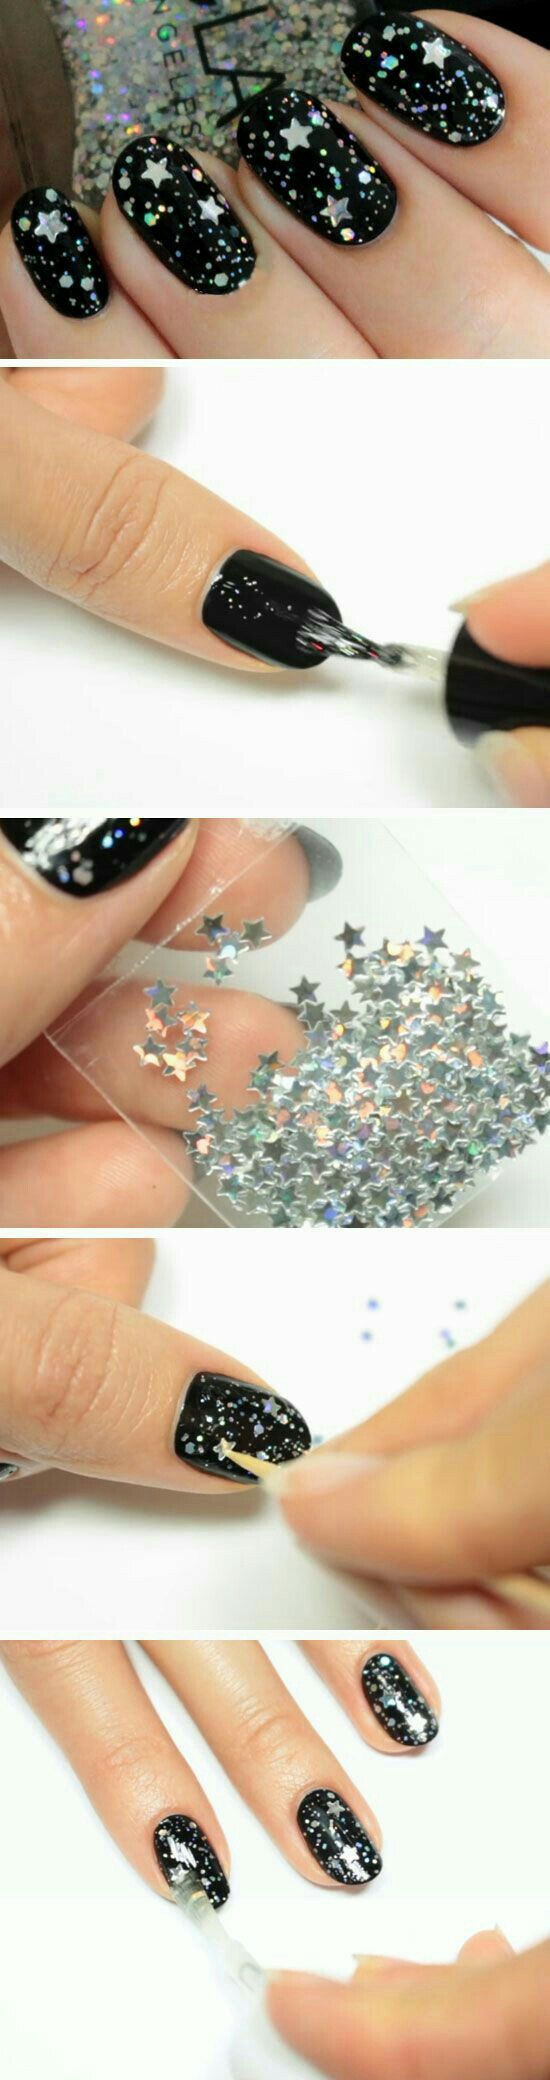 The 25 best teen nail designs ideas on pinterest diy nails make sure your nails are ready to show off for the stroke of midnight this new years one of these designs features nail art inspired by a dress prinsesfo Choice Image